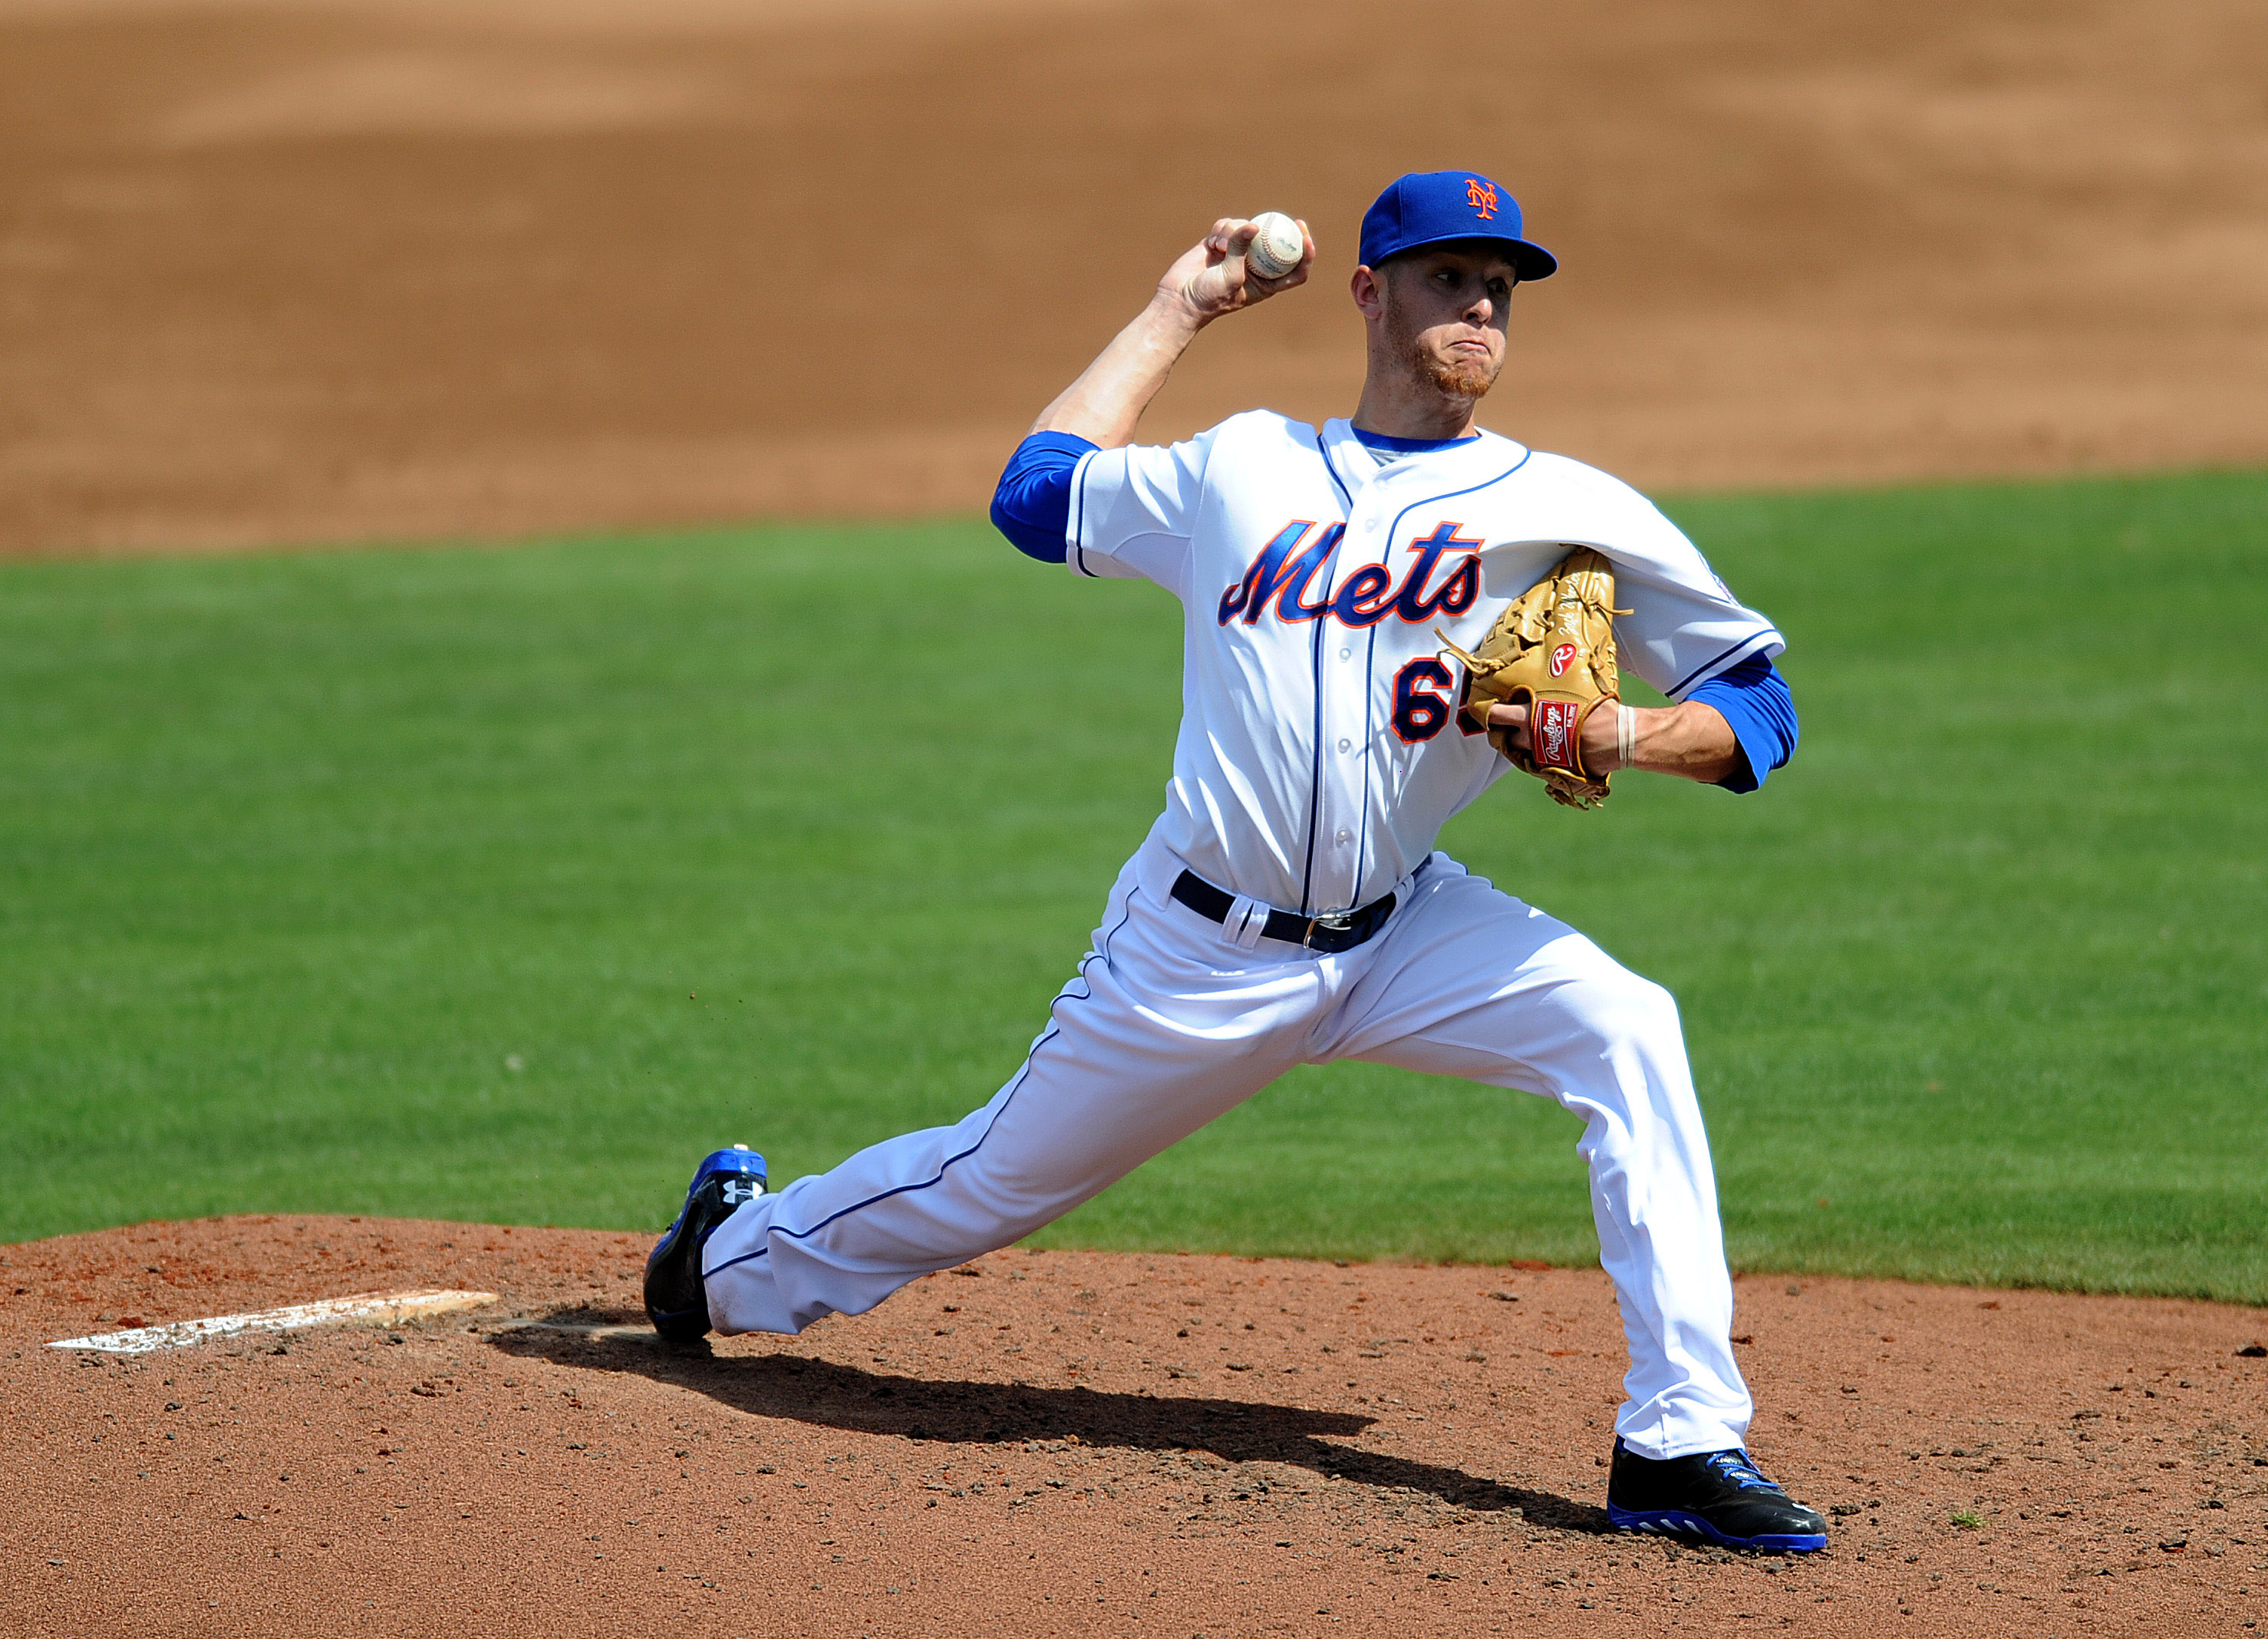 If Las Vegas doesn't eat him up, Zack Wheeler should soon be in a Mets uniform. (USAT)